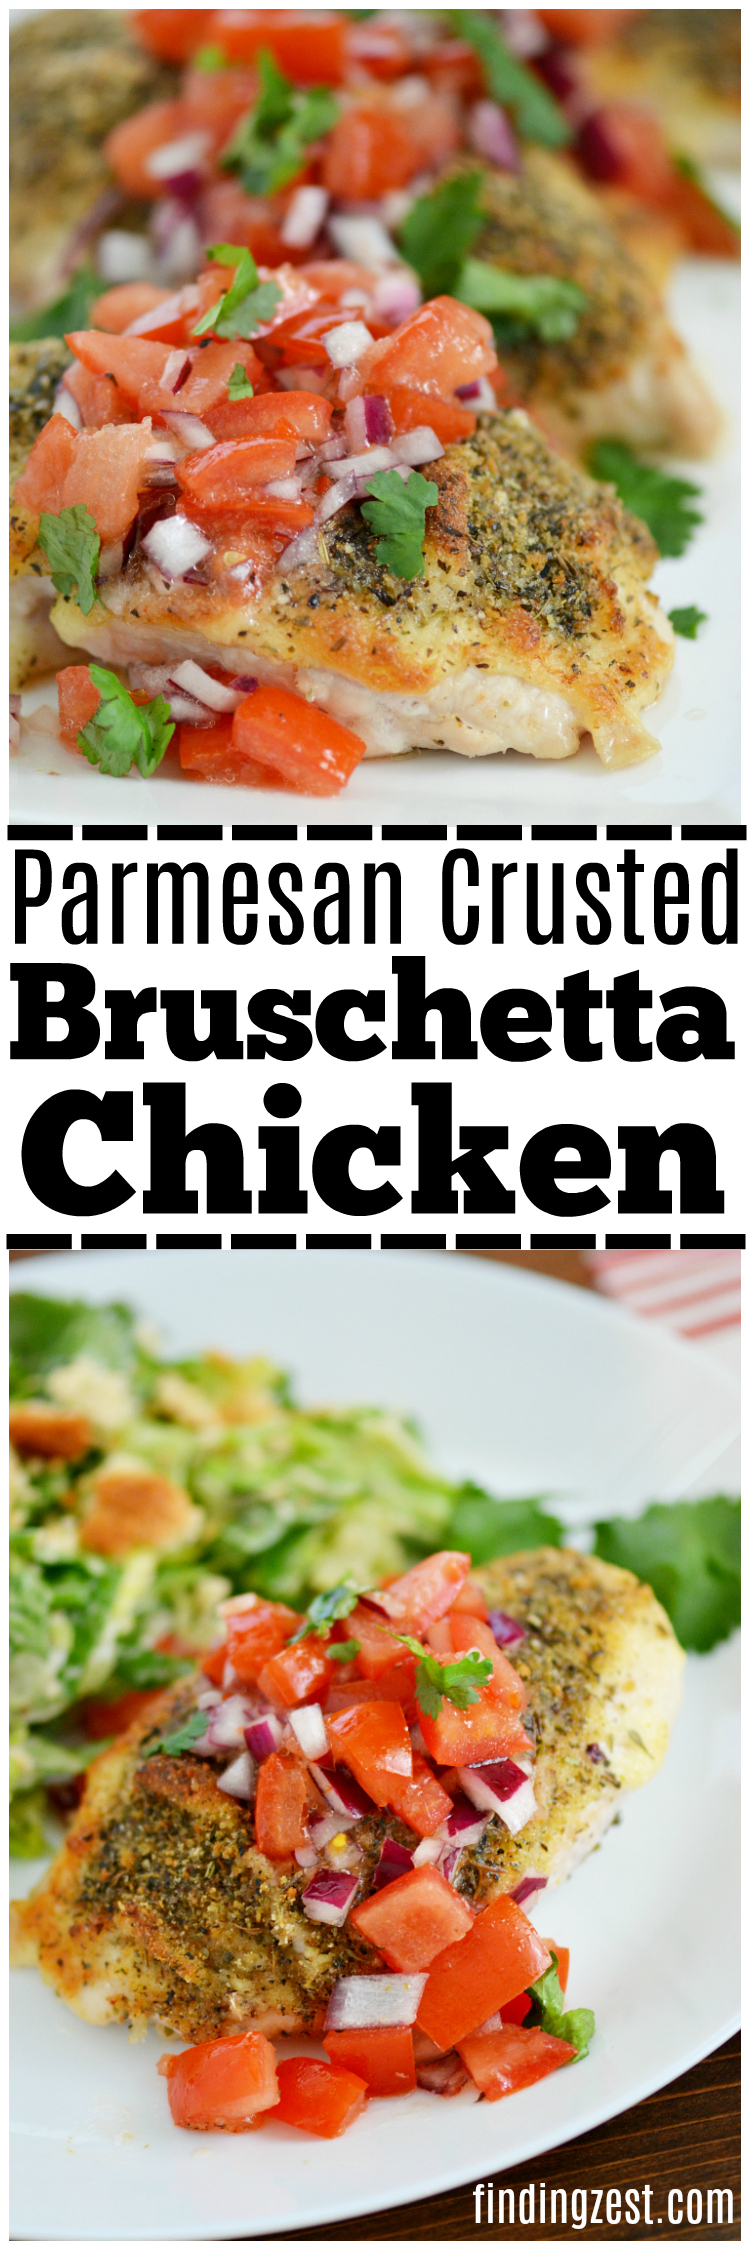 Parmesan Crusted Bruschetta Chicken Easy Weeknight Dinner